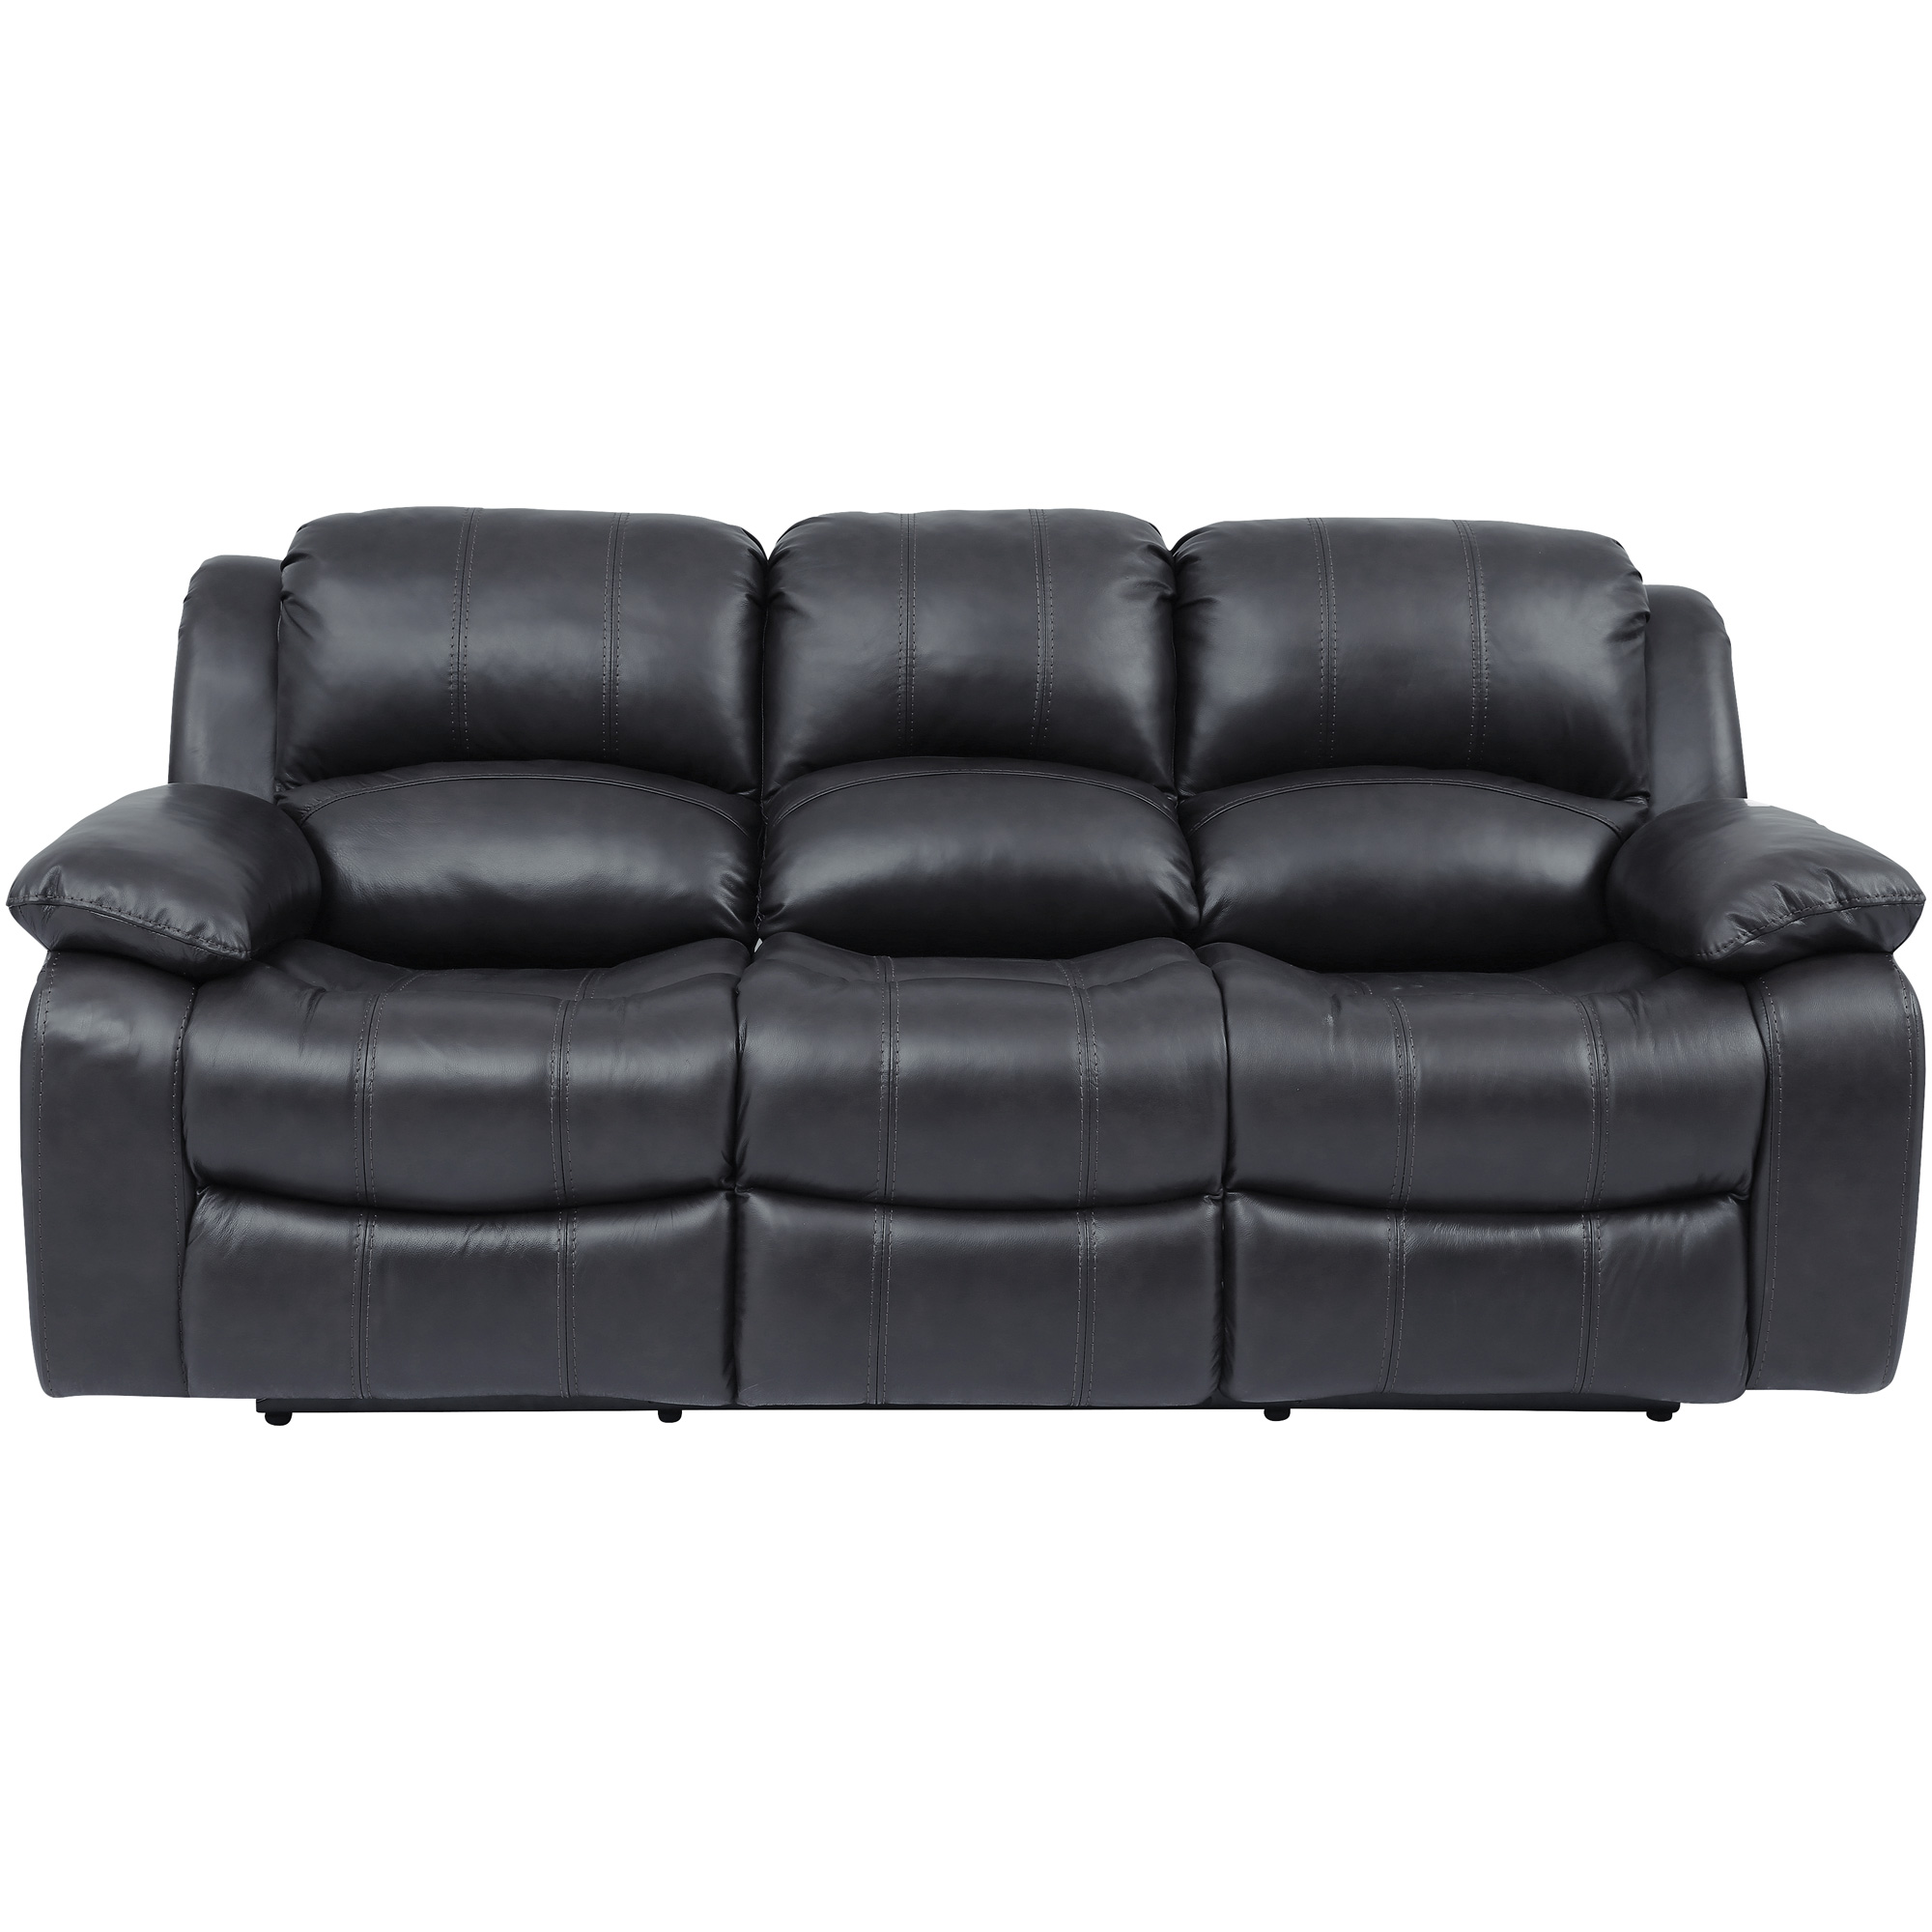 Wah Cheers | Ender Gray Leather Power+ Reclining Sofa